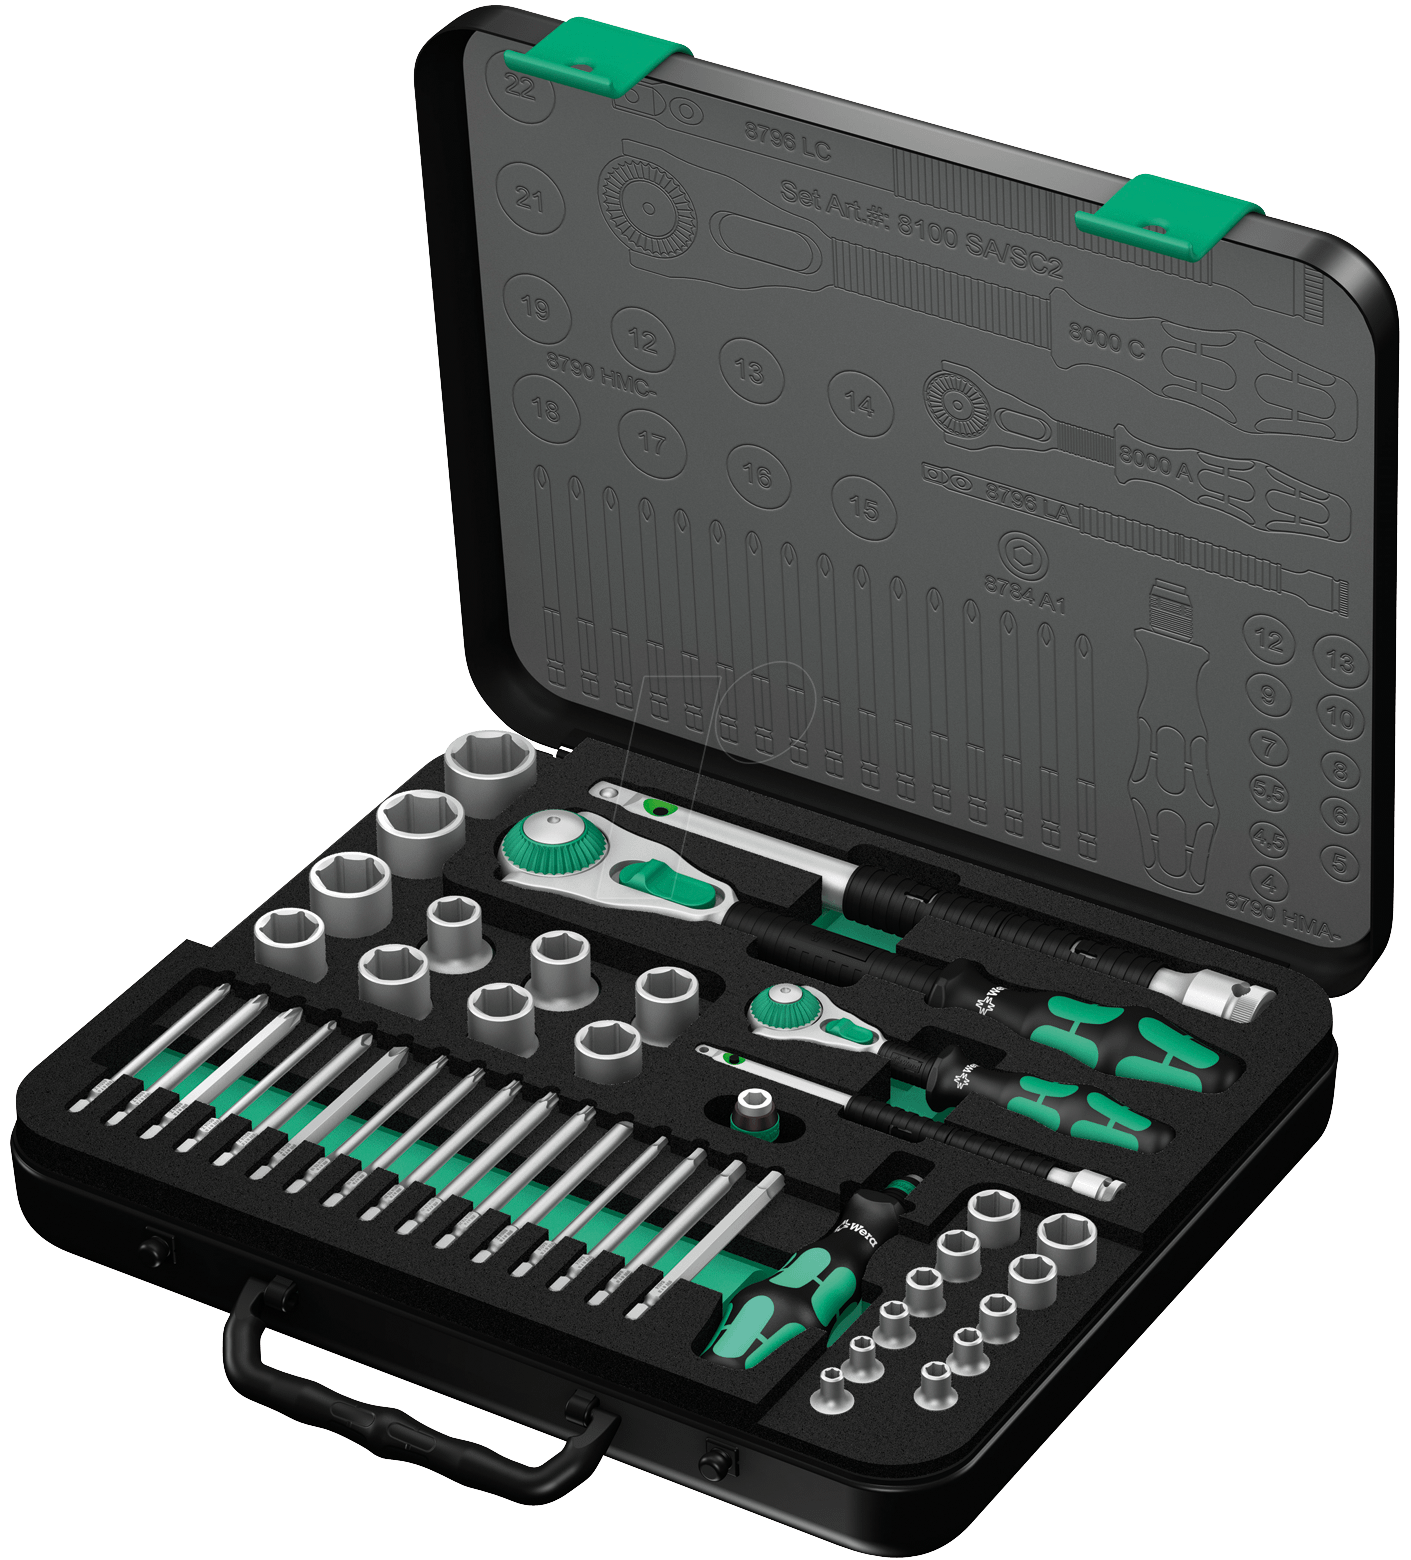 7 Gatenzaag Wera 8100 Sasc2 Zyklop Socket Set 1 4 4312 Drive At